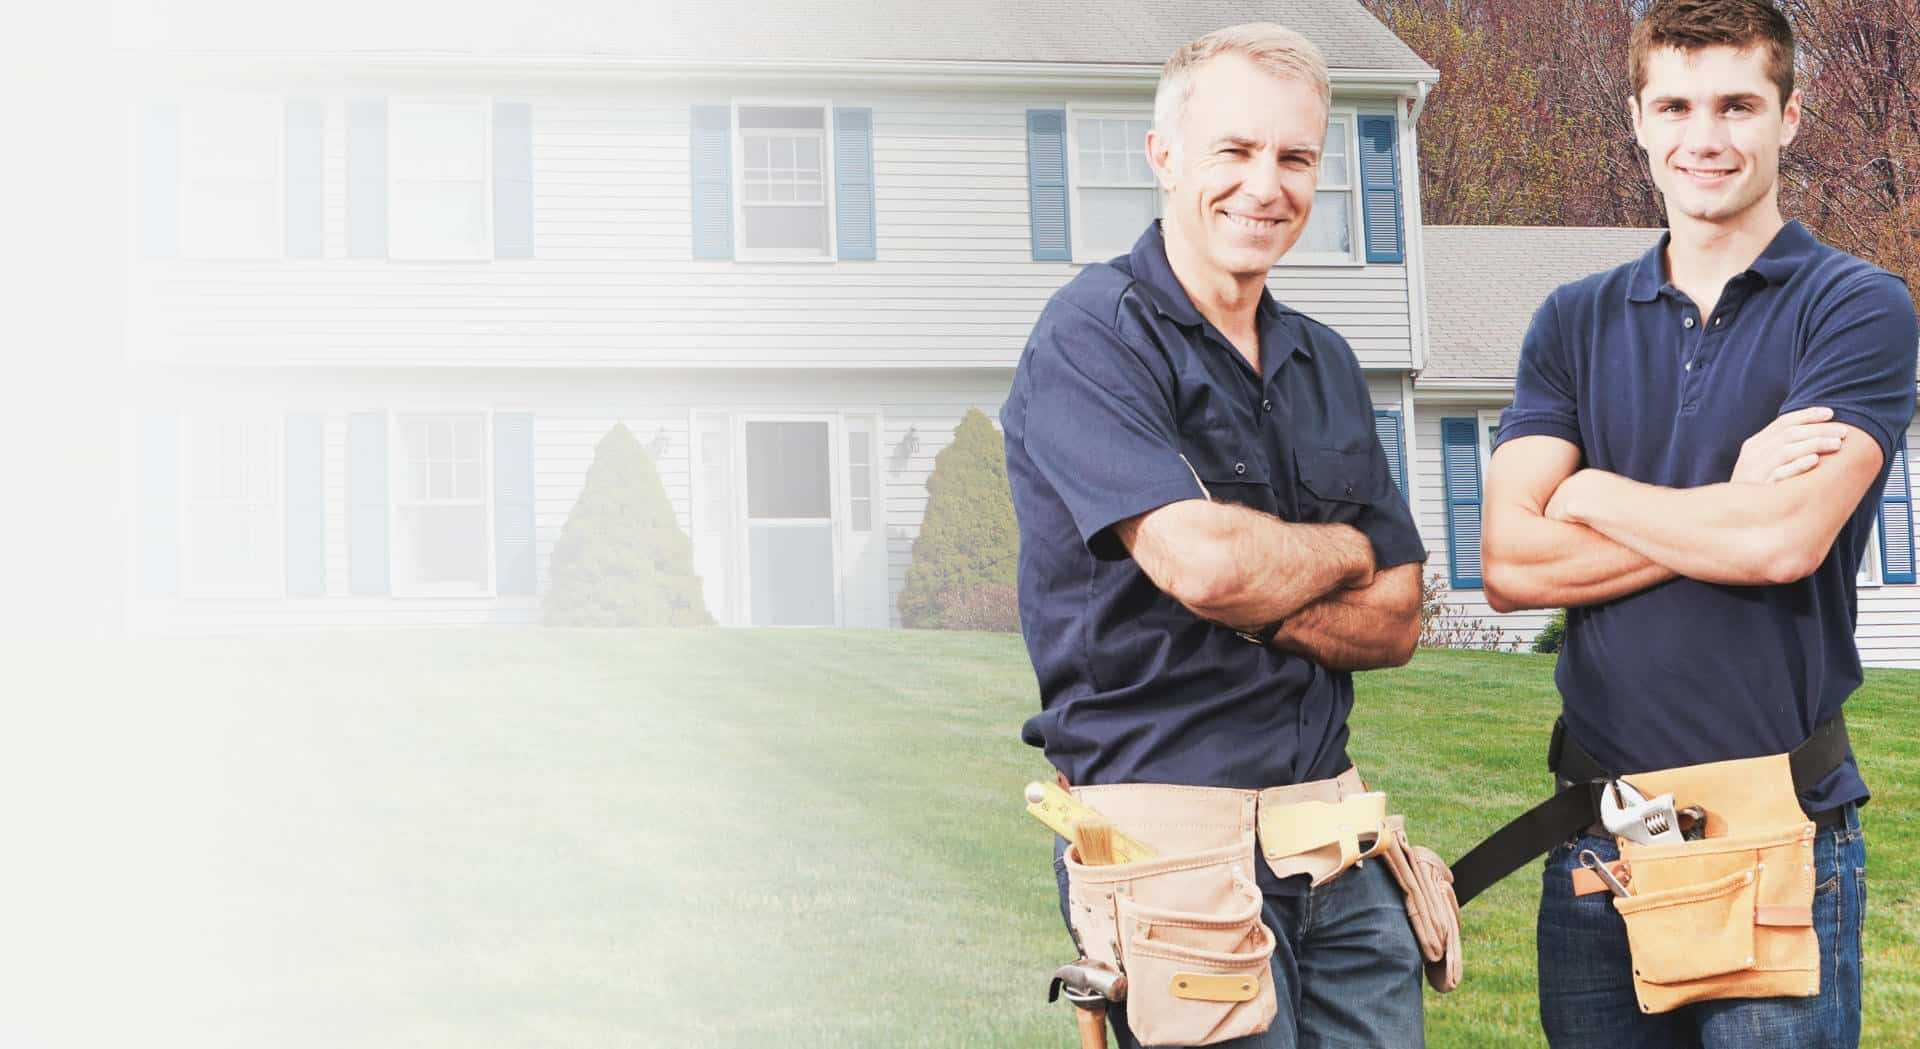 Improve your indoor air quality and lower your energy bills. Get in touch with The Weatherize Guyz, LLC and hire us for premium residential weatherization services. We offer effective air sealing and insulation services to all homeowners in Massachusetts and New Hampshire.